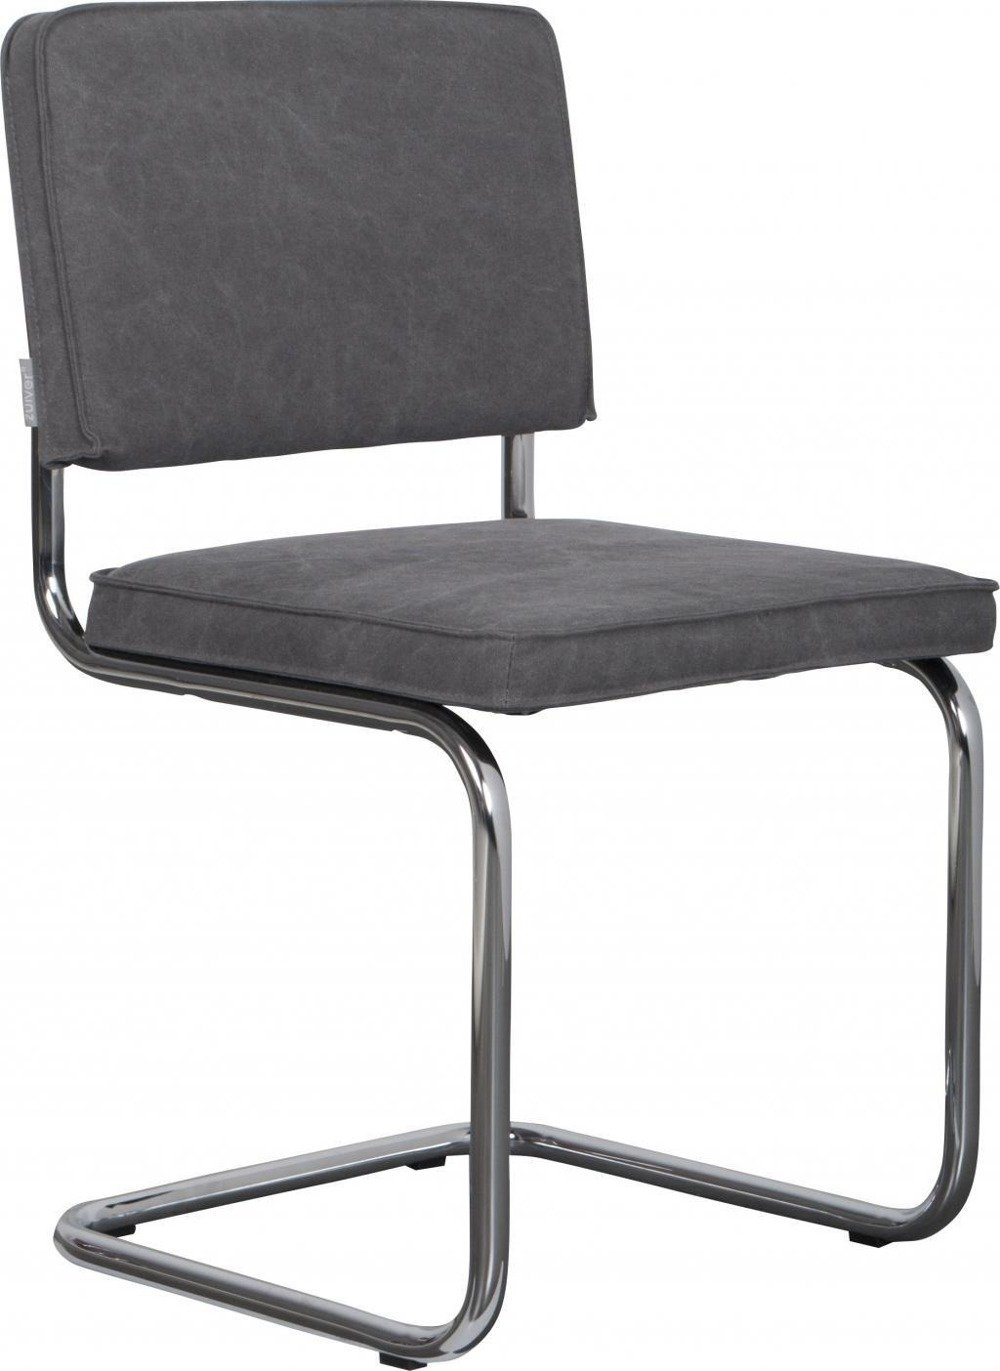 Zuiver :: Chair RIDGE VINTAGE grey